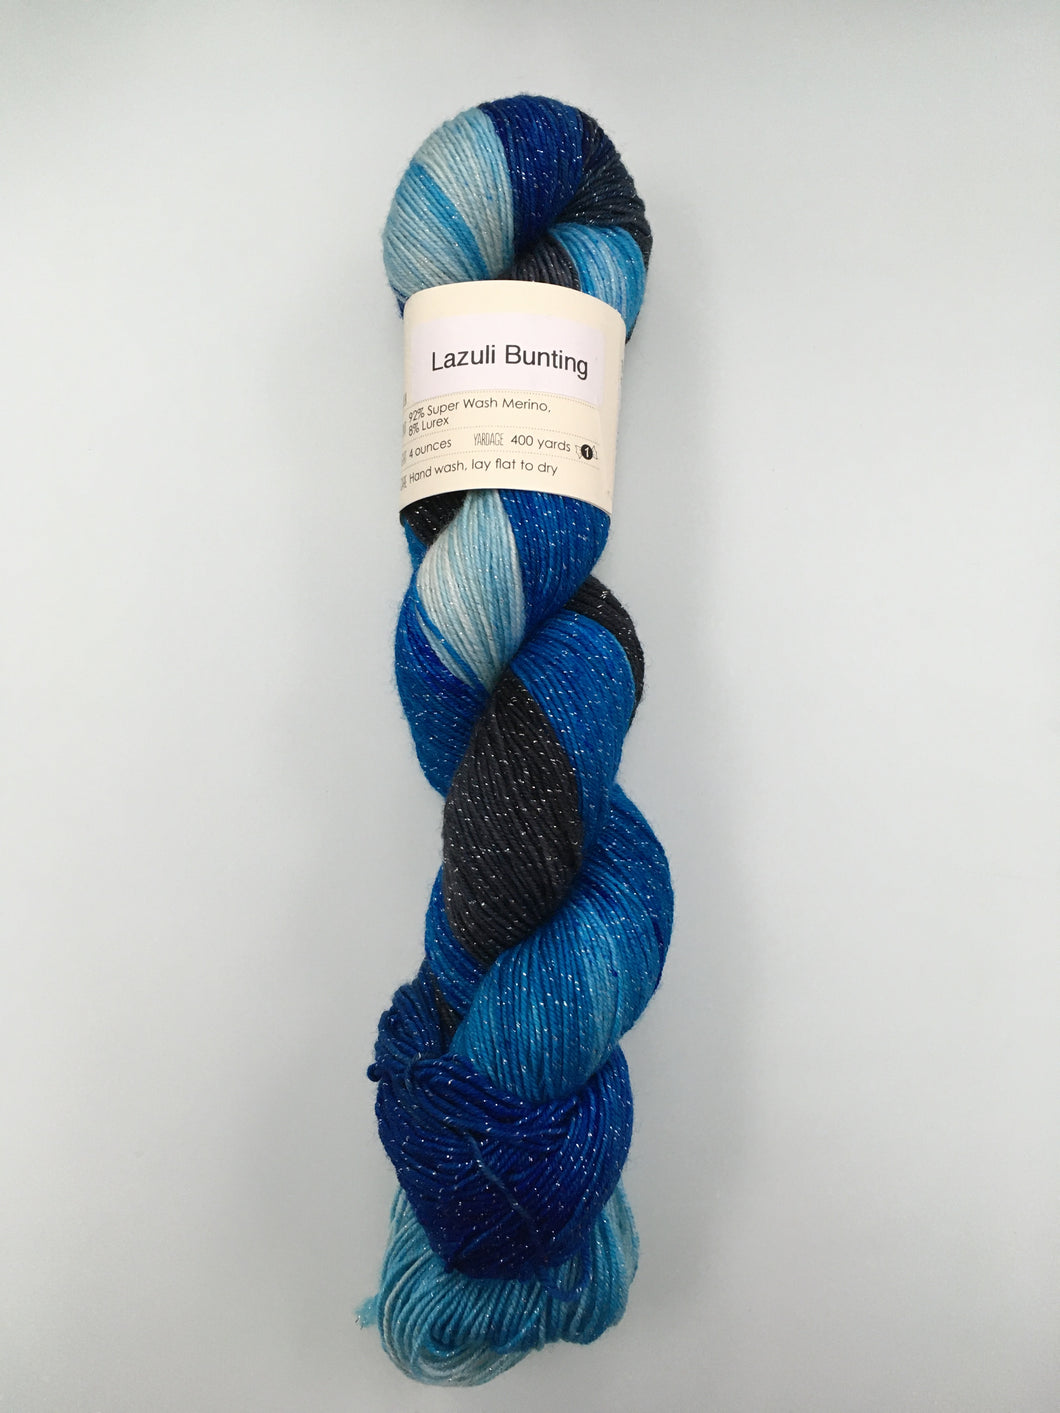 Knitted Wit Pixie Plied - Lazuli Bunting